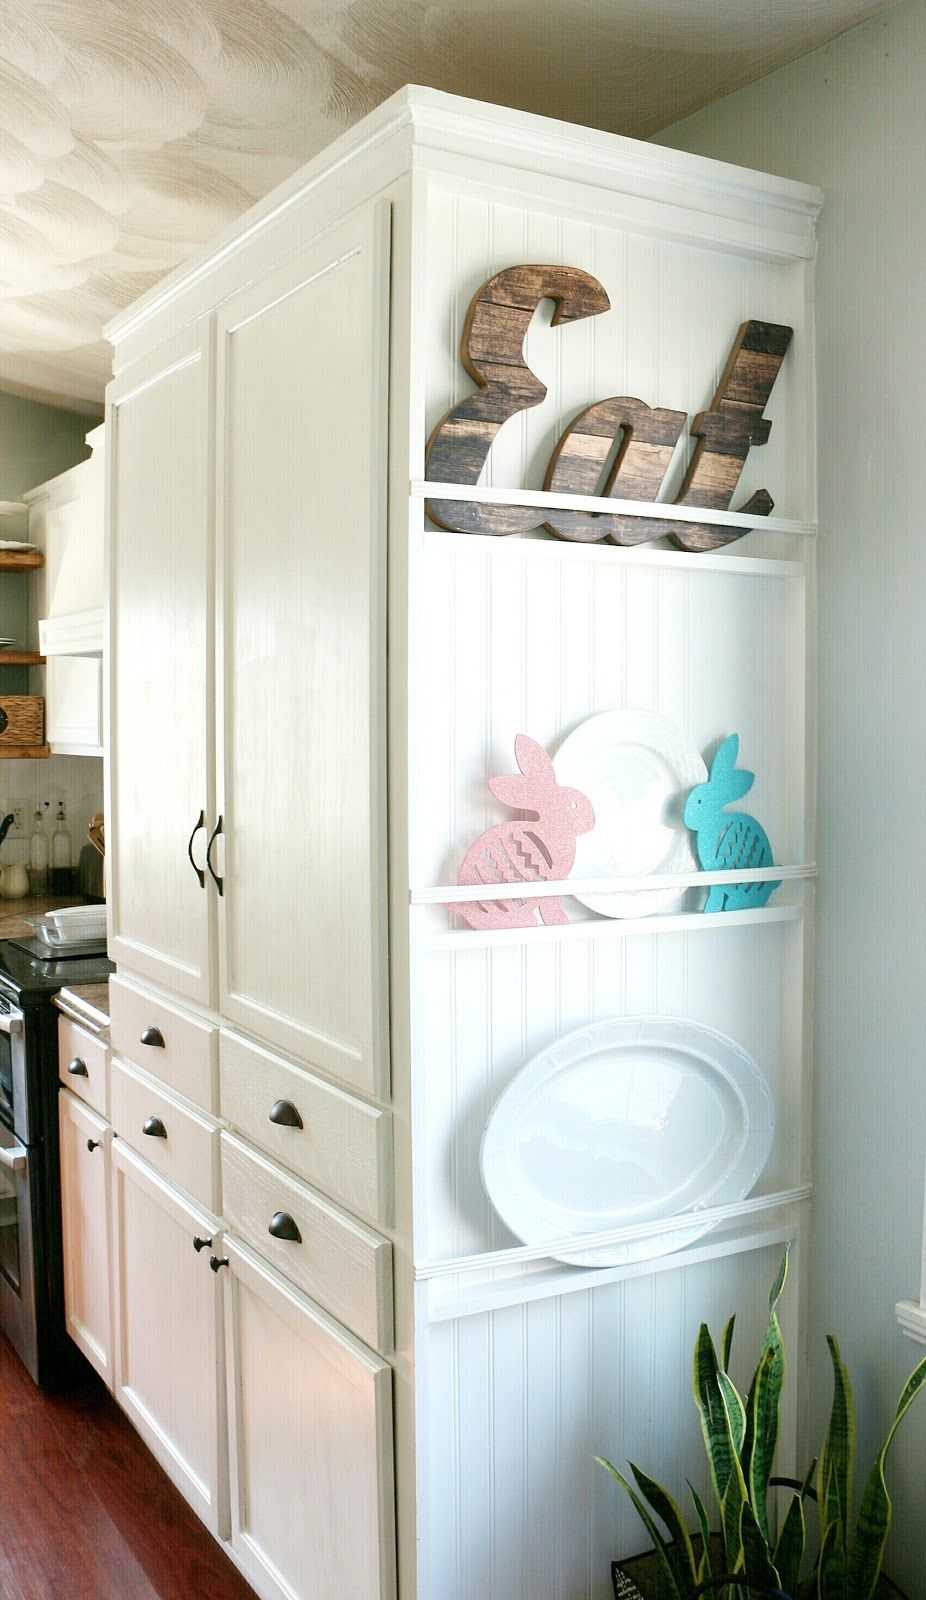 Kitchen Crown Moulding Ideas: My DIY Kitchen: Cabinet Crown Molding, How To Fake The